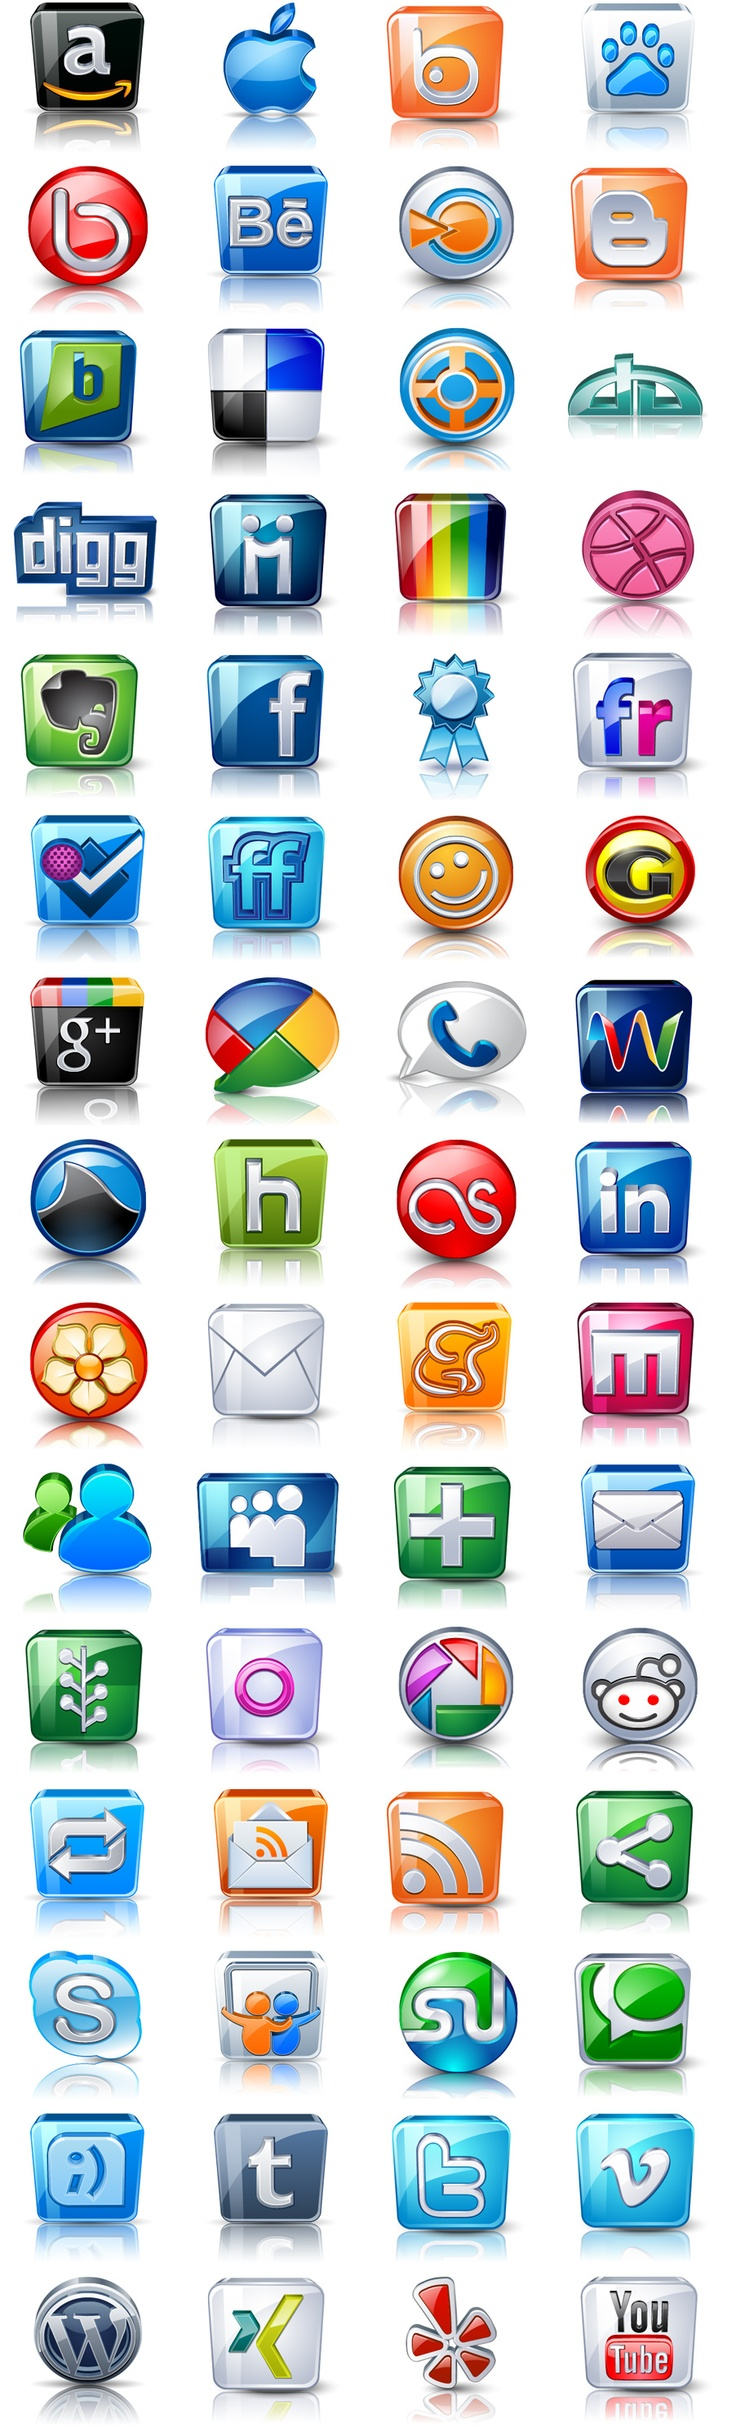 High detail social icons love these by @Barry Schwartz (just need a Pinterest icon).